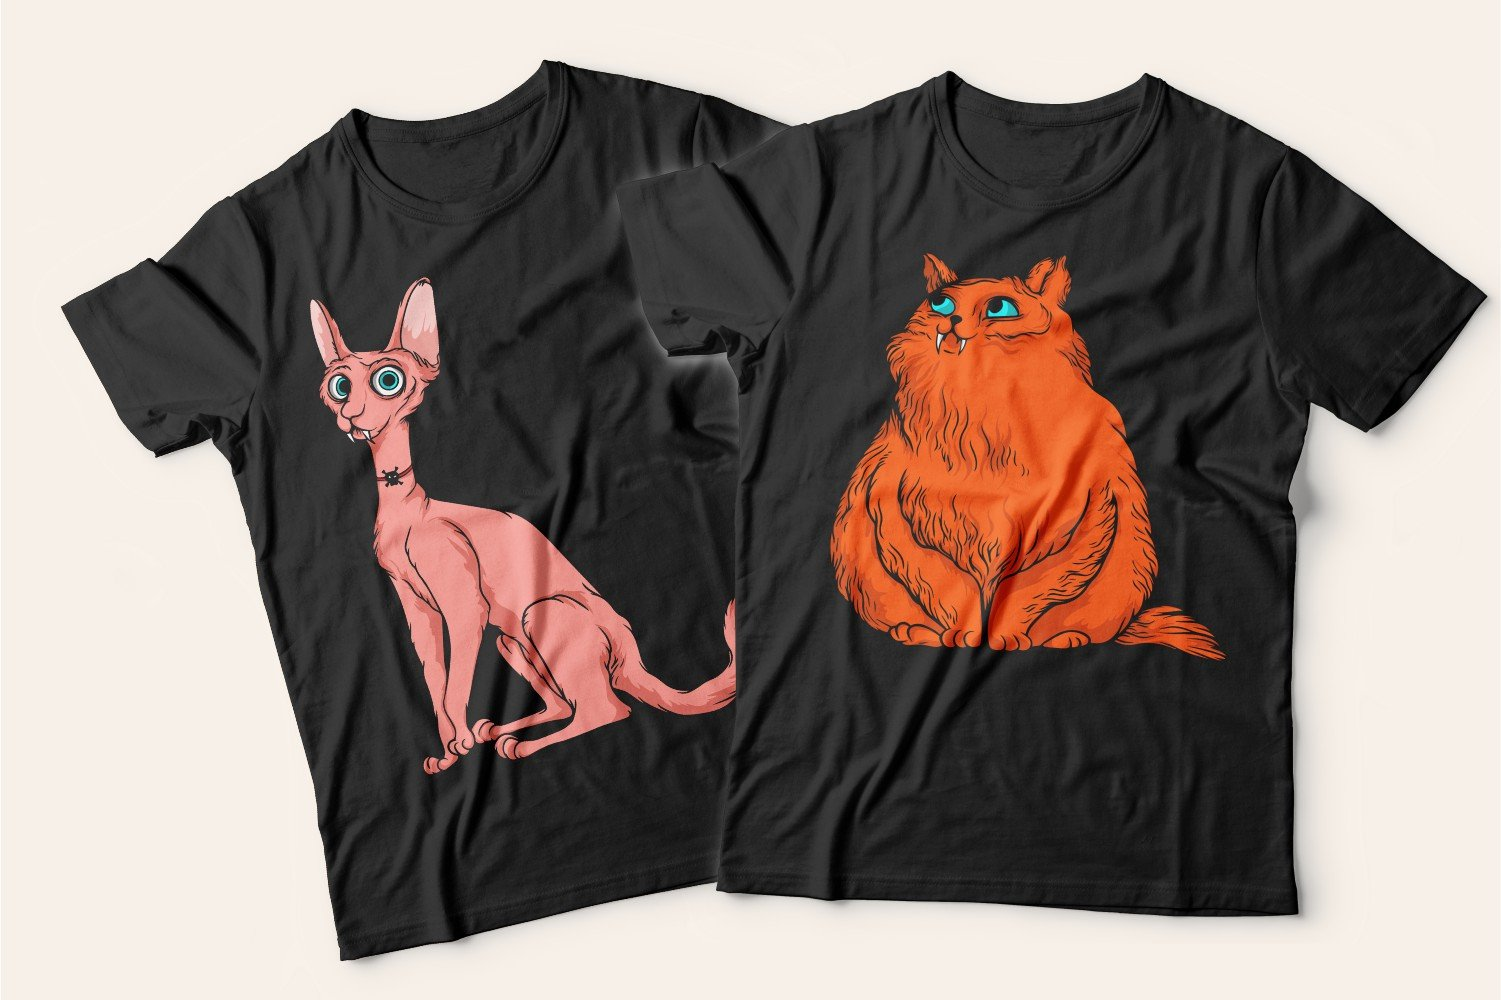 Two T-shirts with cats: one is black with a pink frightened cat, the second is also black with a red fluffy cat.